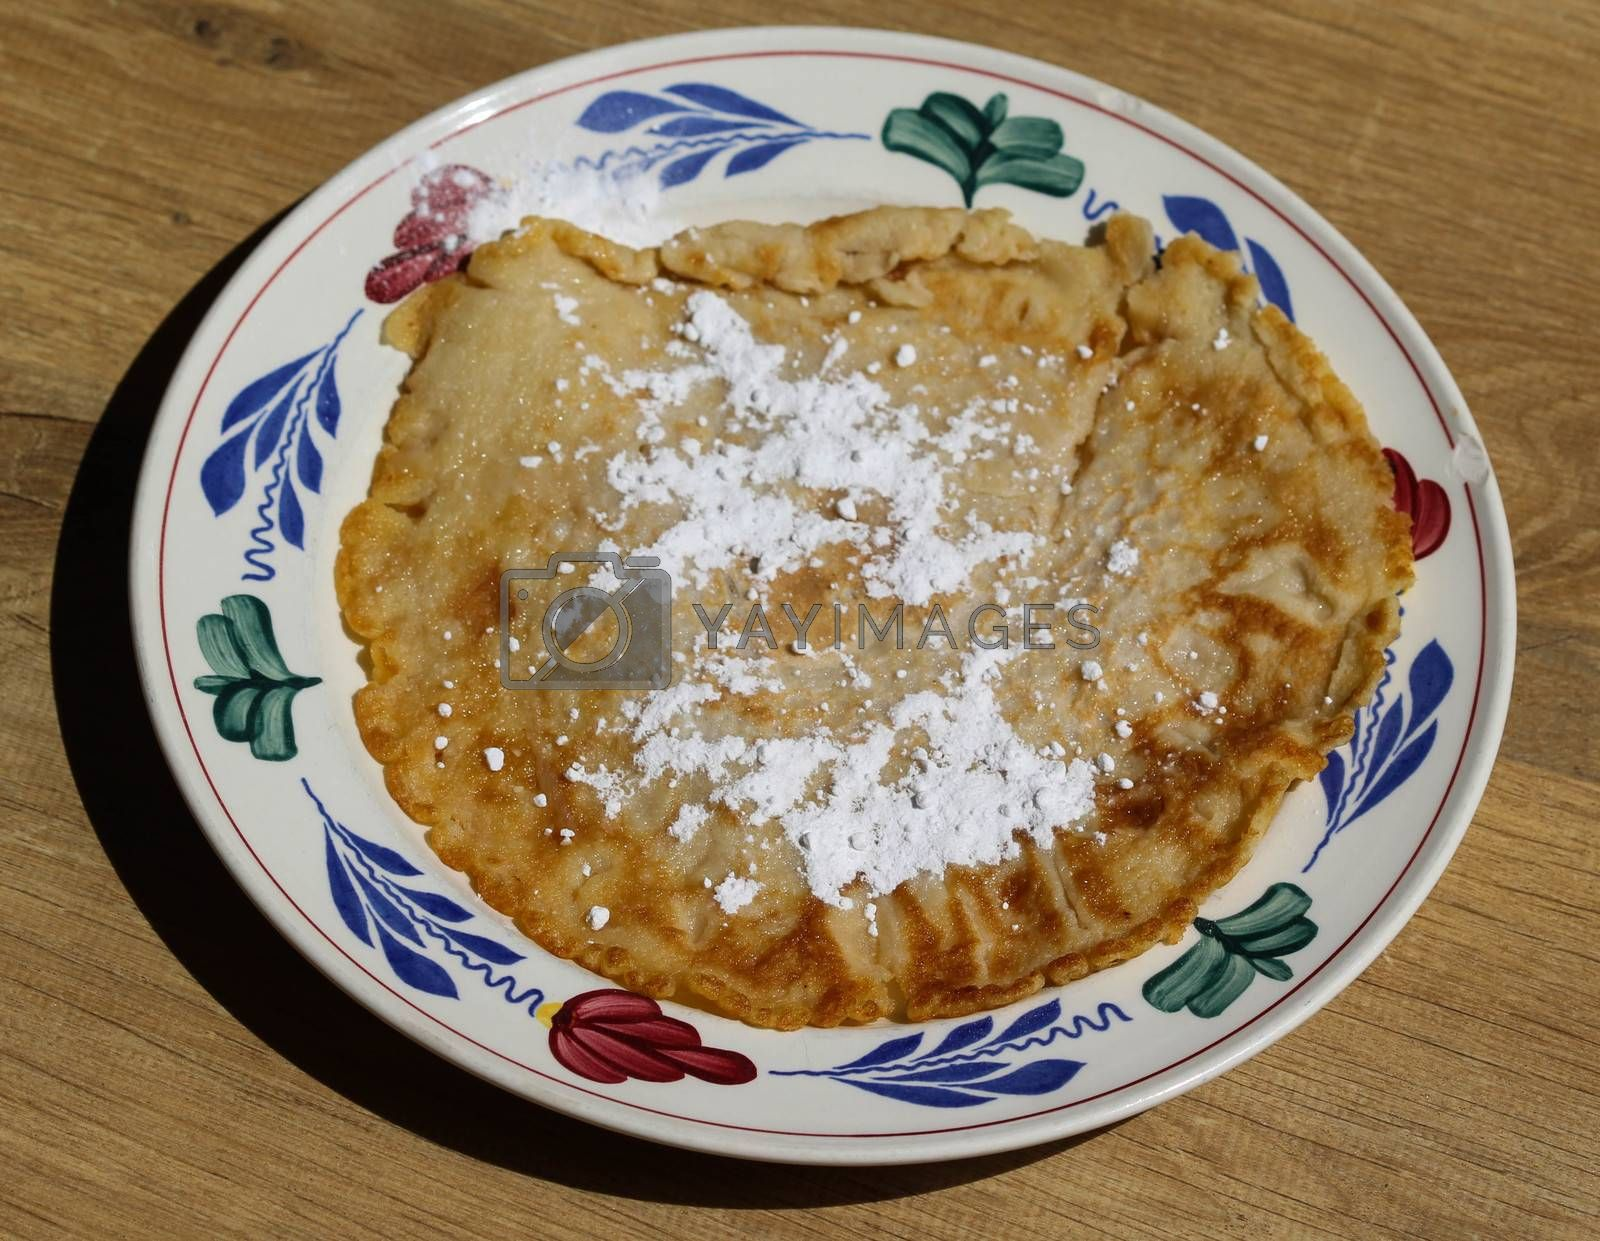 Royalty free image of fresh baked pancake with powdered sugar on plate on wooden background by michaelmeijer